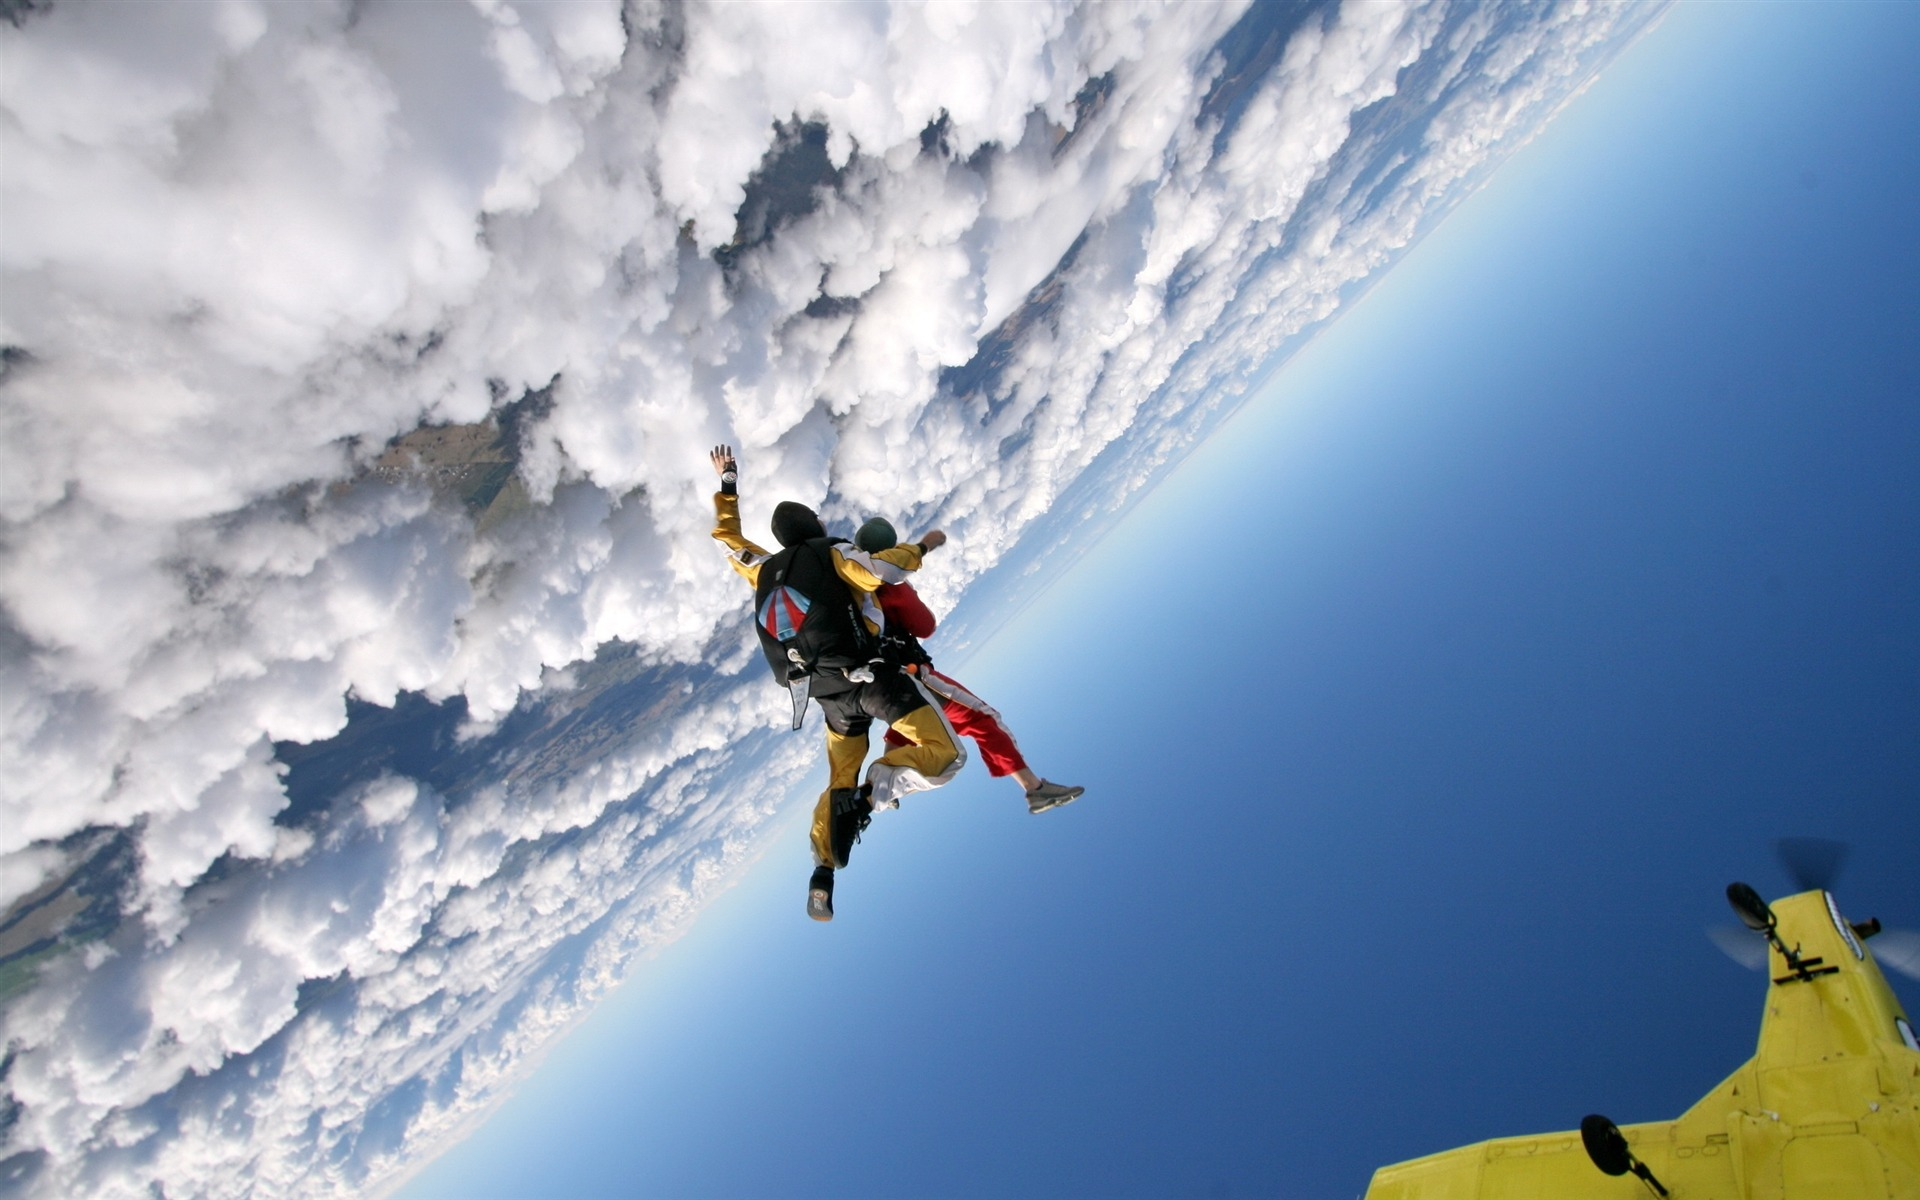 jump clouds sky plane parachutists-Sports HD Wallpaper - 1920x1200 wallpaper download